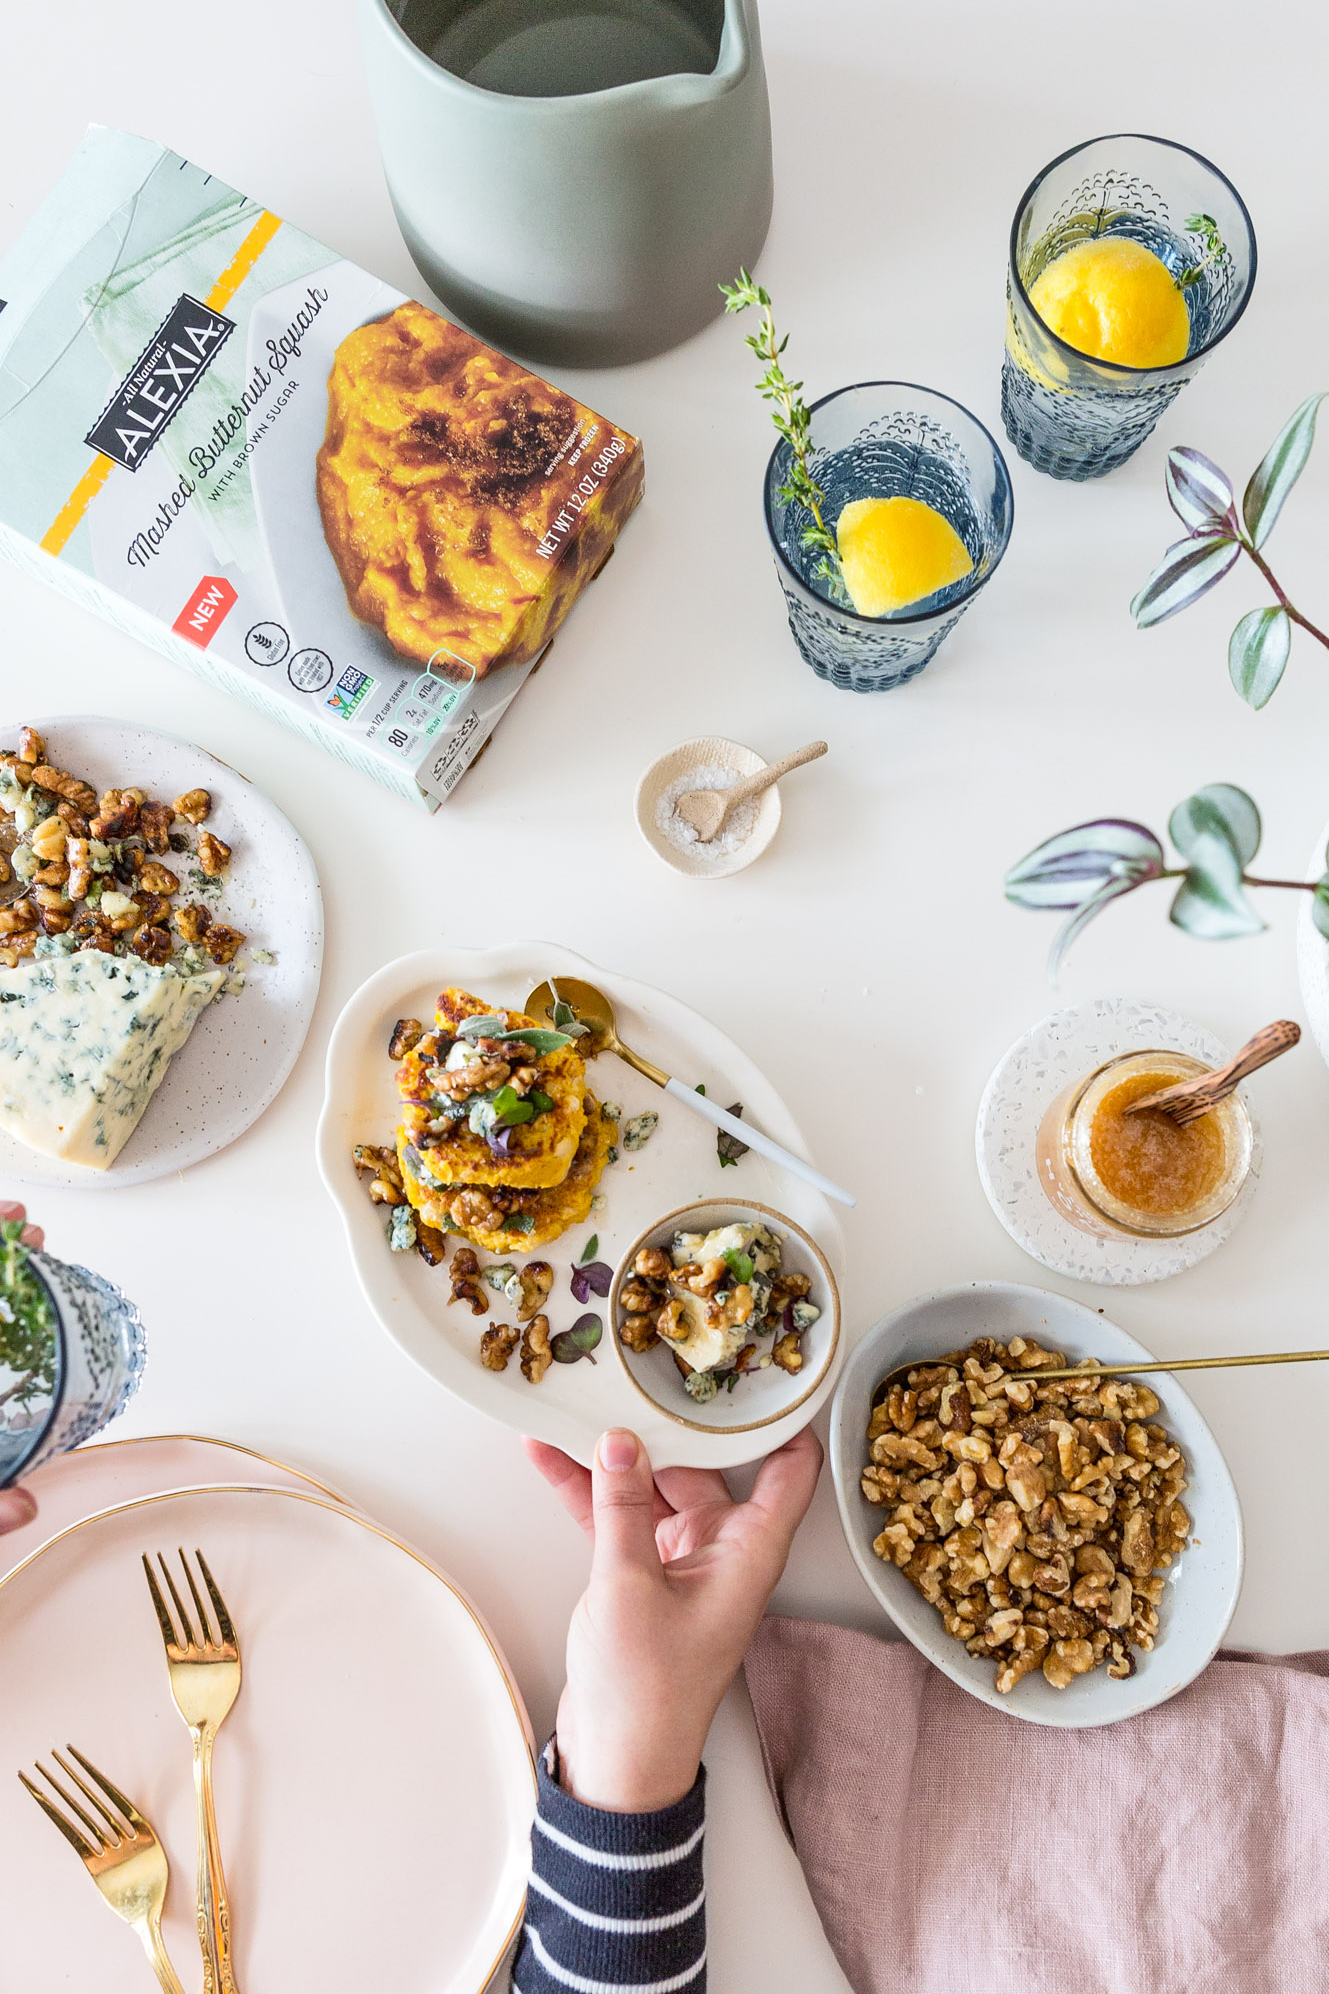 Vegetarian Butternut Squash & White Bean Fritters with Blue Cheese & Walnuts